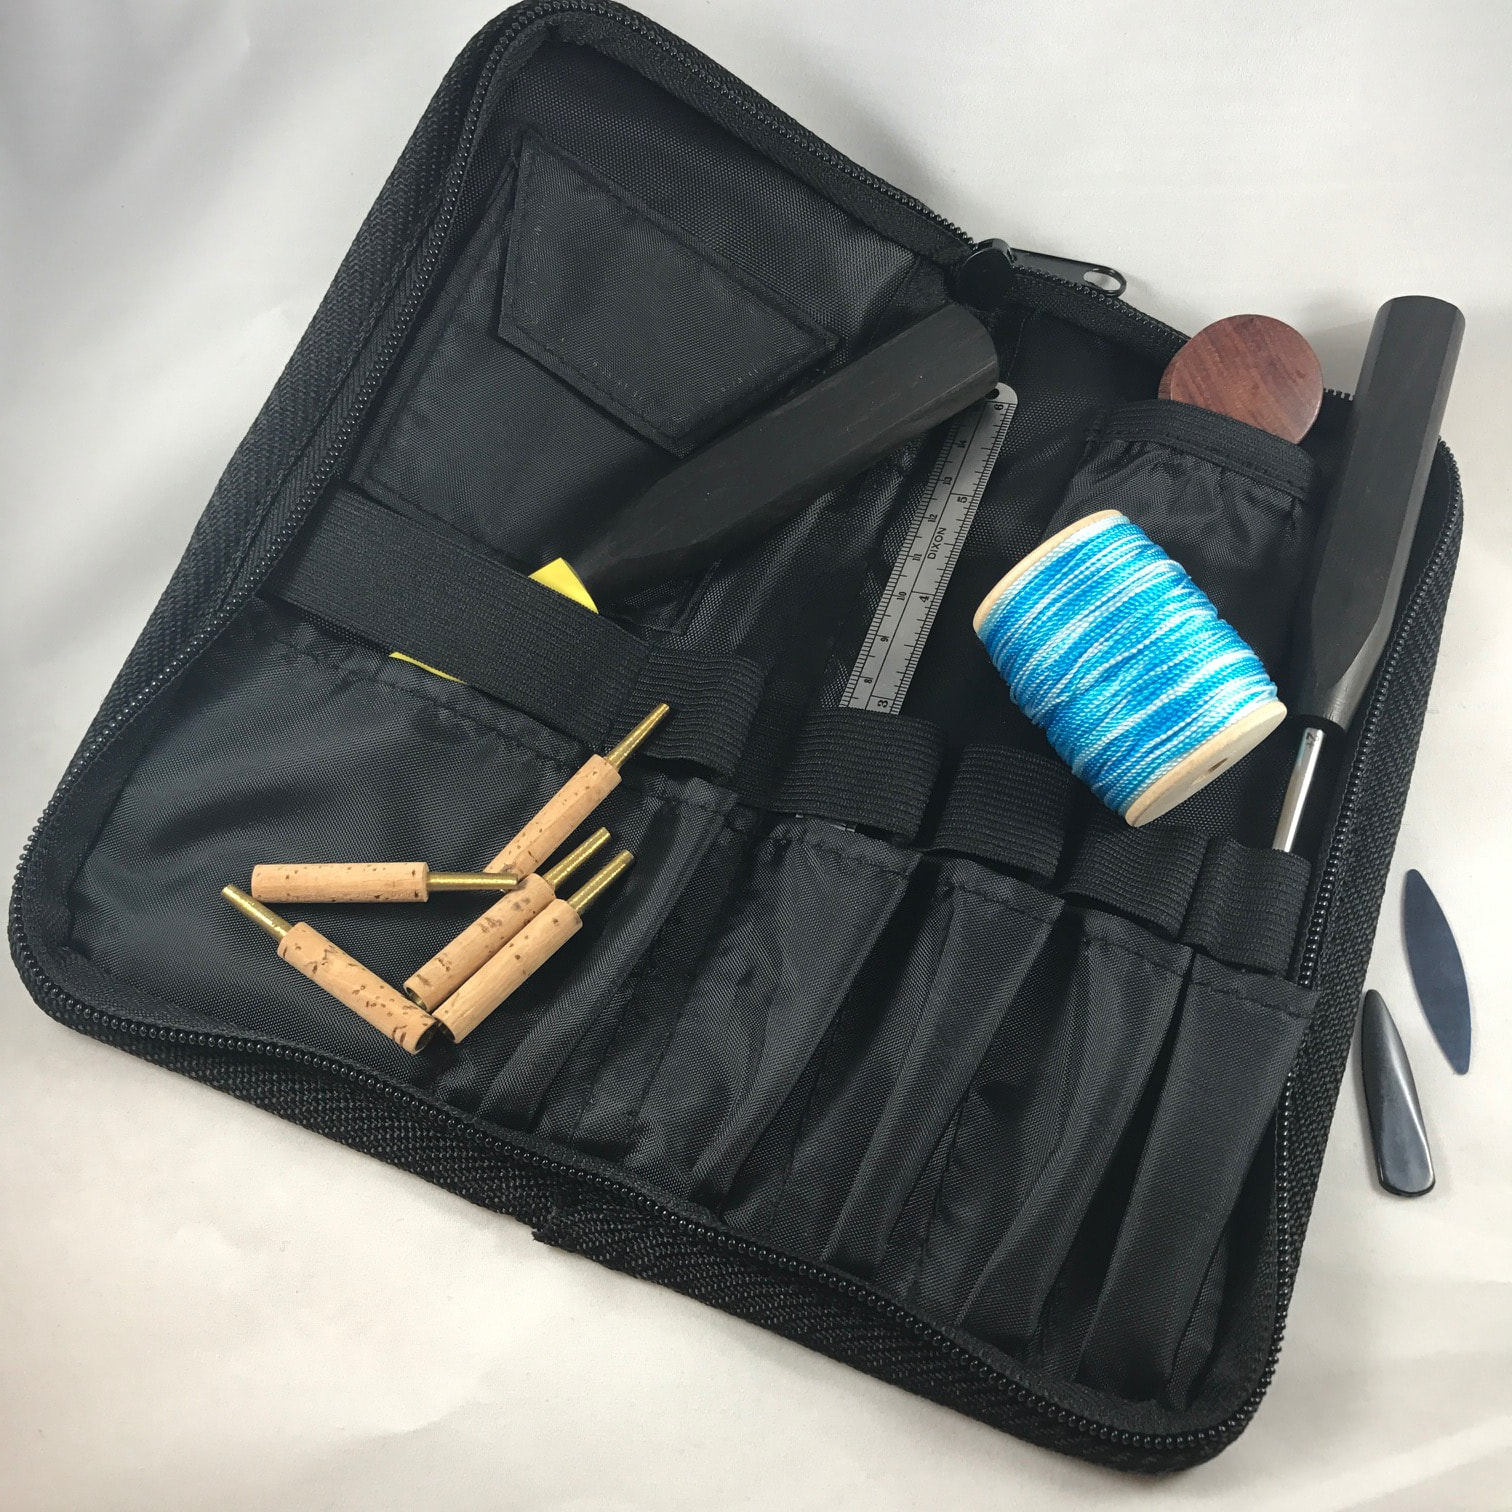 CCDR Oboe Reed Making Kit (With Razor Knife Upgrade)